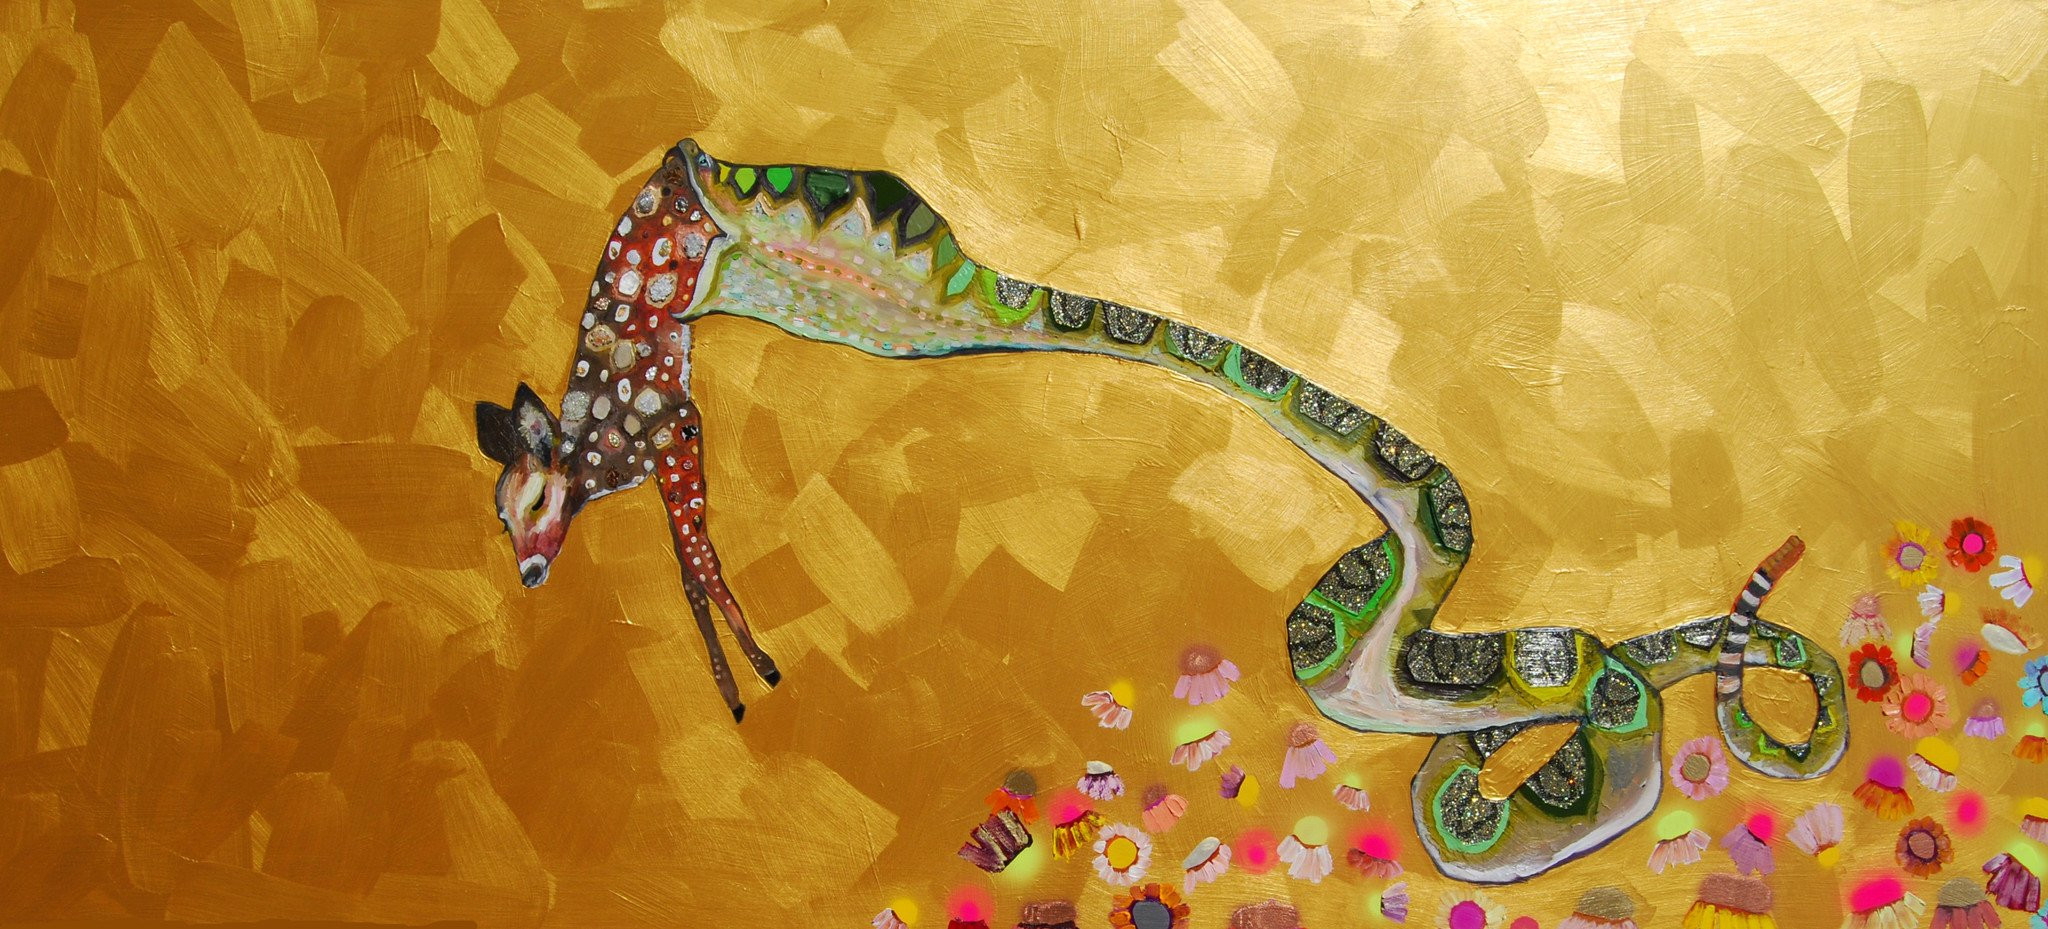 """Rattlesnake  80""""x36""""  $3800  2014  Oil, acrylic, spray paint, metal leaf, glass, mica, sand, glitter, fabric and vinyl on wood.  A rattlesnake springing from a wildflower bed to eat a delicious meal in the metallic gold sky.  This is an original oil painting. The sides are painted gloss black and there is a wire on the back so it is ready to hang with no framing needed.  Contact eli@elihalpin.com for purchasing. Payment plans accepted."""